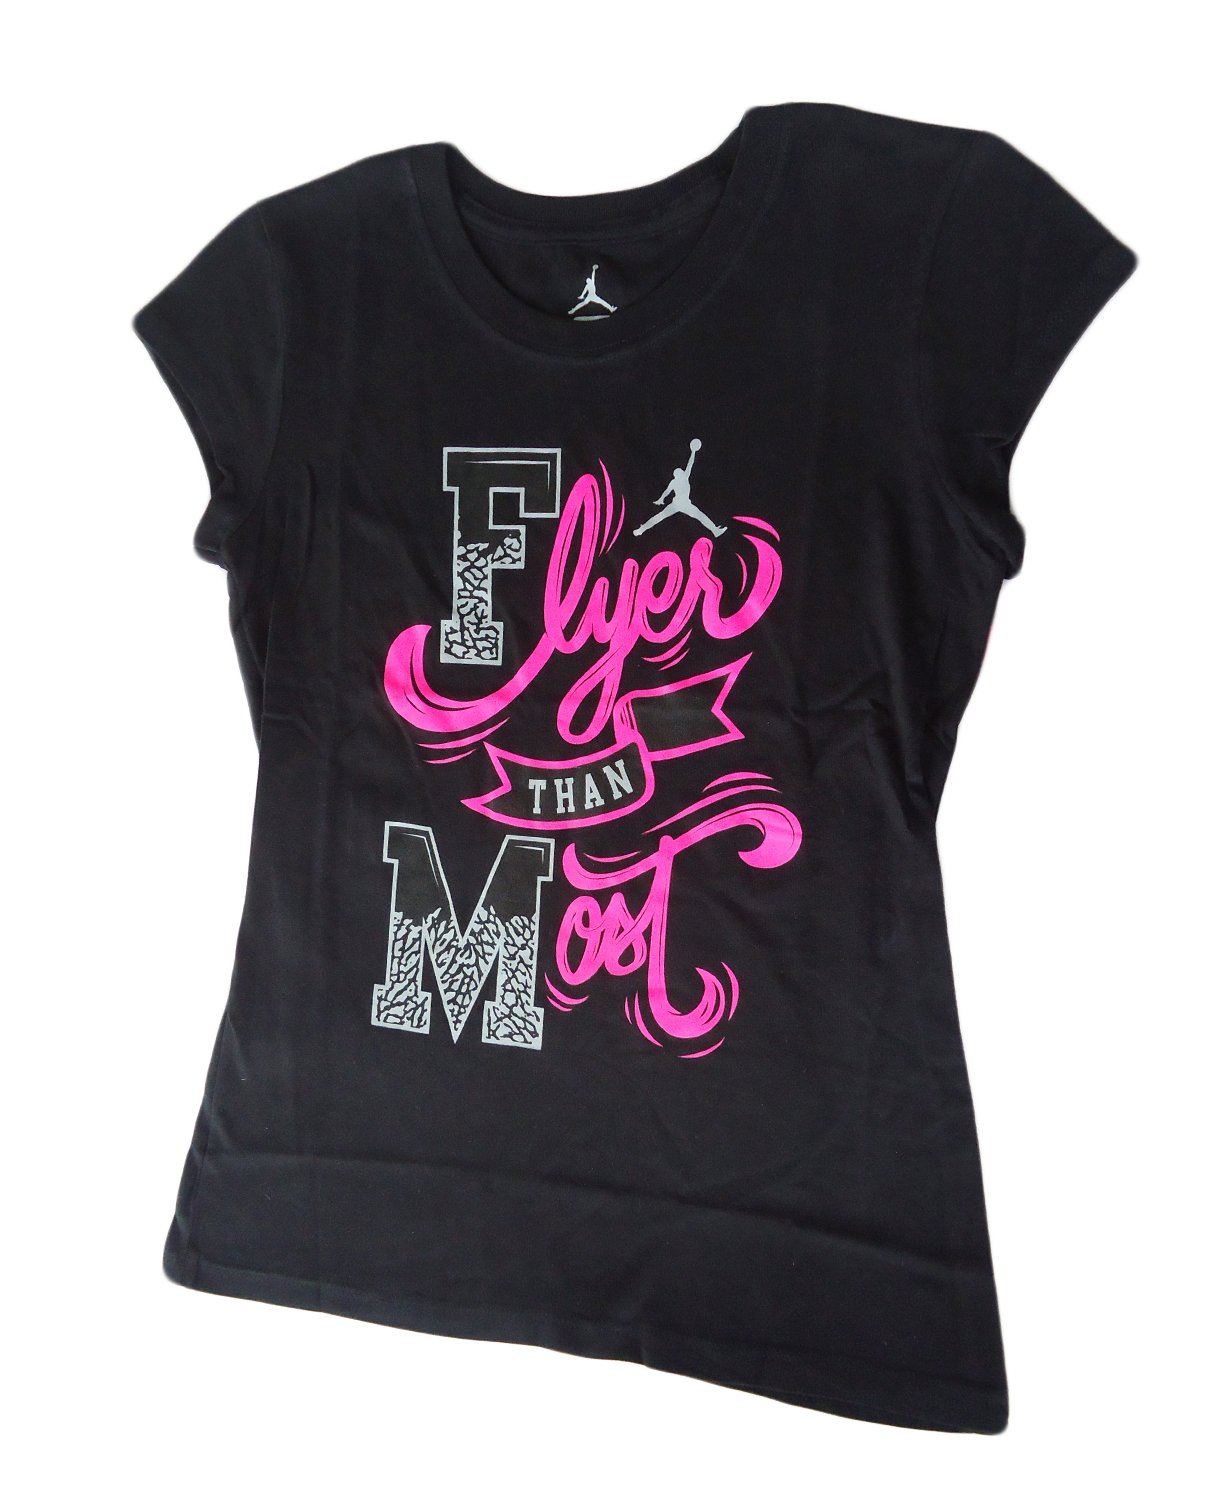 NIKE Jordan Girls Short Sleeve T Shirt Top Flyer Than Most (M, Black)